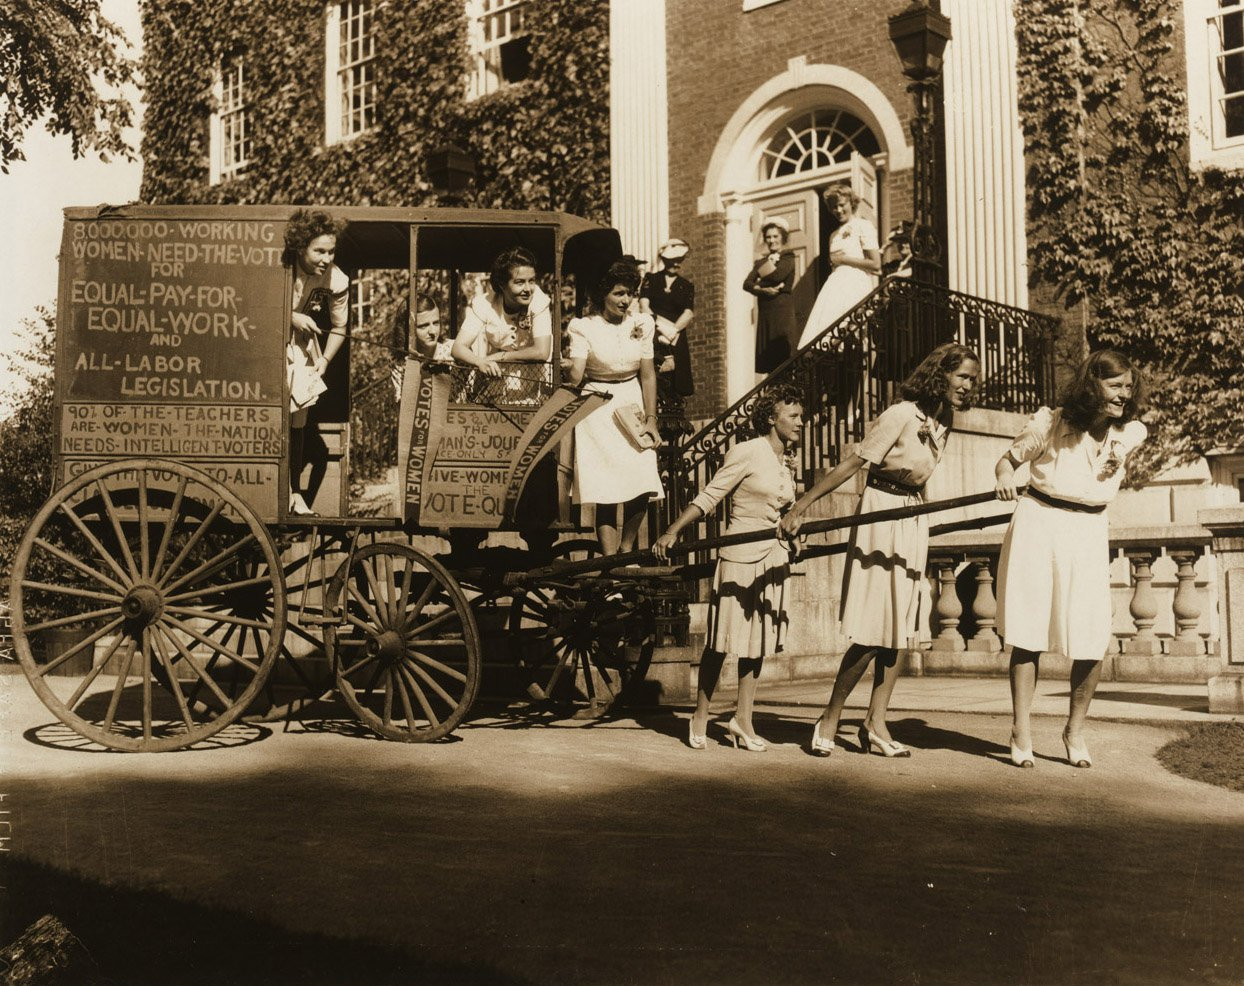 women surrounded by an antique cart in front of a university building